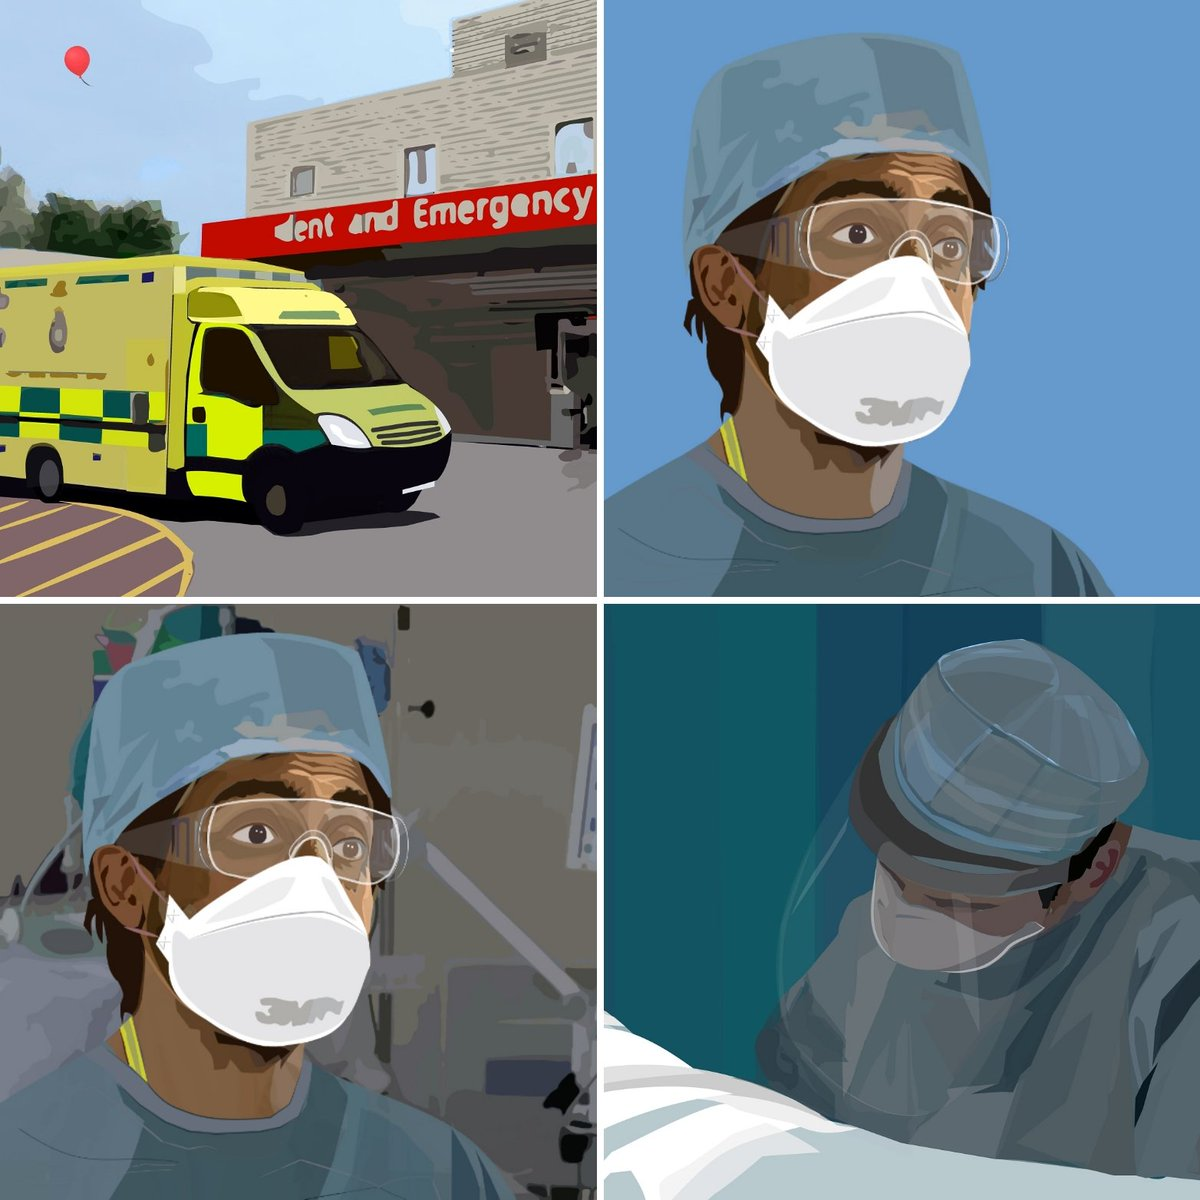 COVID19THREADS Milton Keynes University Hospital talks about the emotional impact of Covid. Words by Dr Hamid Manji,  voiced by @sacha_dhawan  commissioned by Milton Keynes Islamic Arts & Culture  @MKIAC  produced by @MutinyProjects. https://t.co/RsvQRb00A7